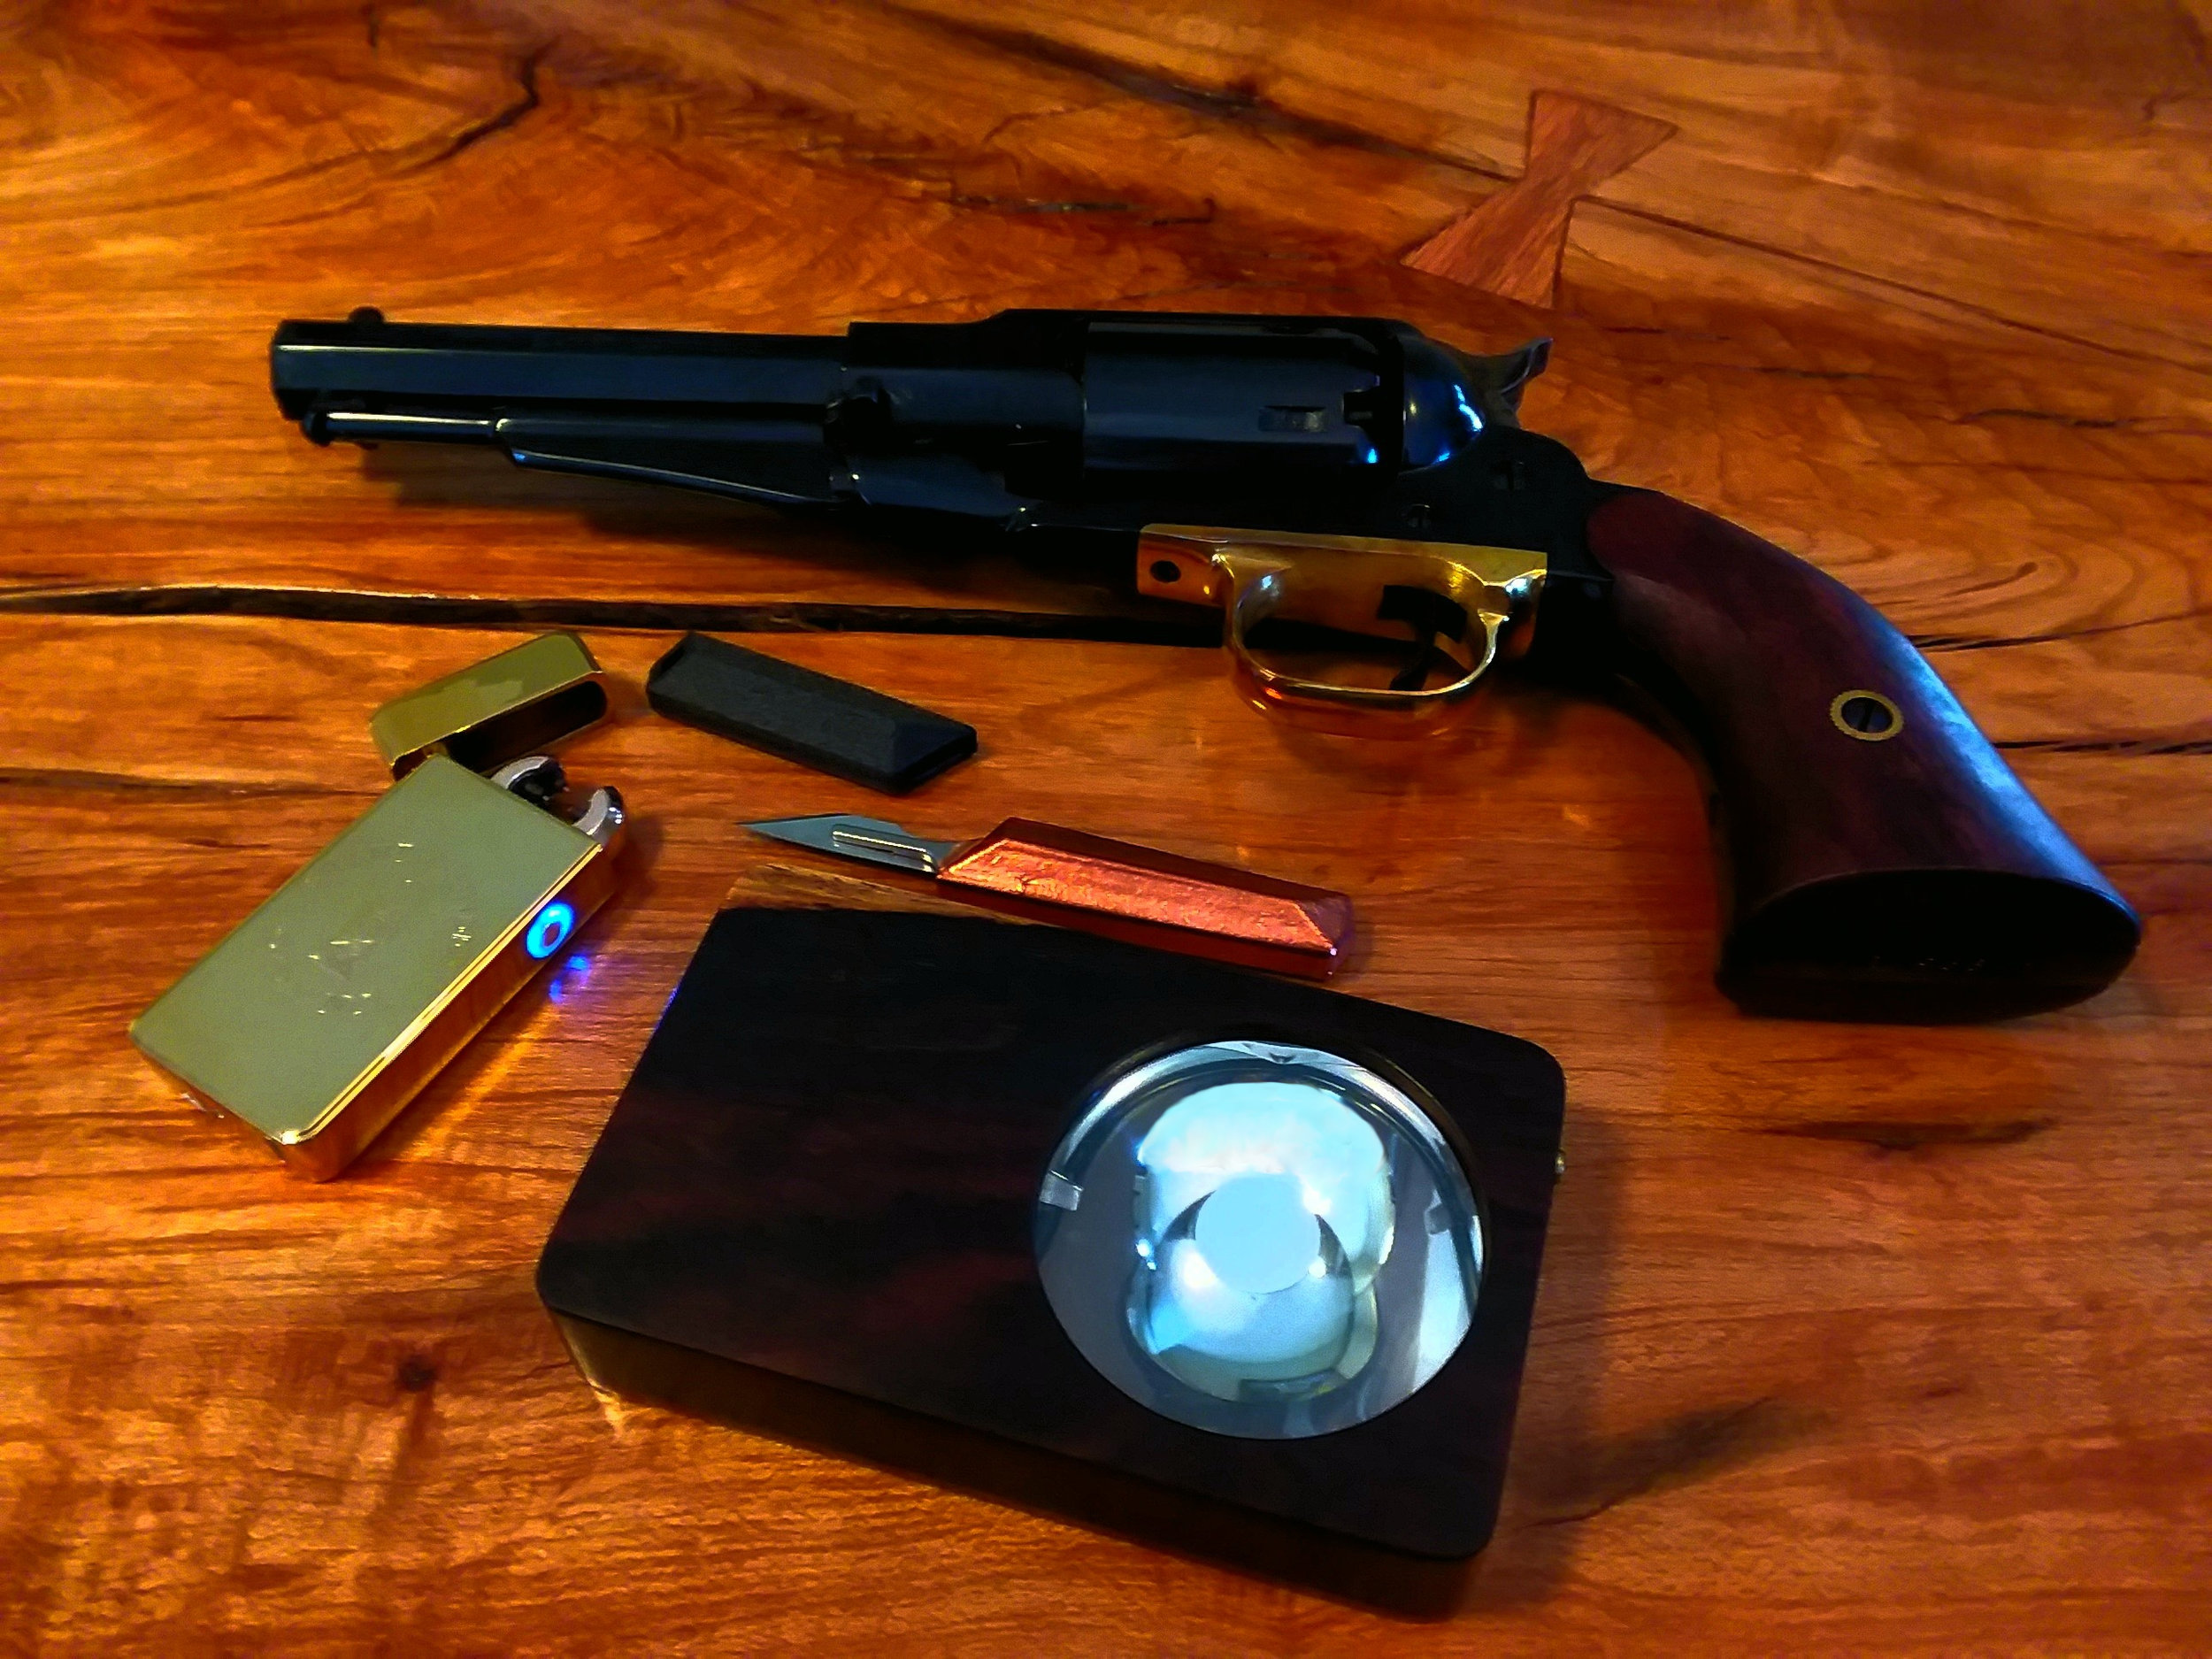 STO arc lighter, custom scalpeldashi in copper w/ carbon fiber sheath, Eye of Sekhmet, 1858 black powder .44 caliber revolver